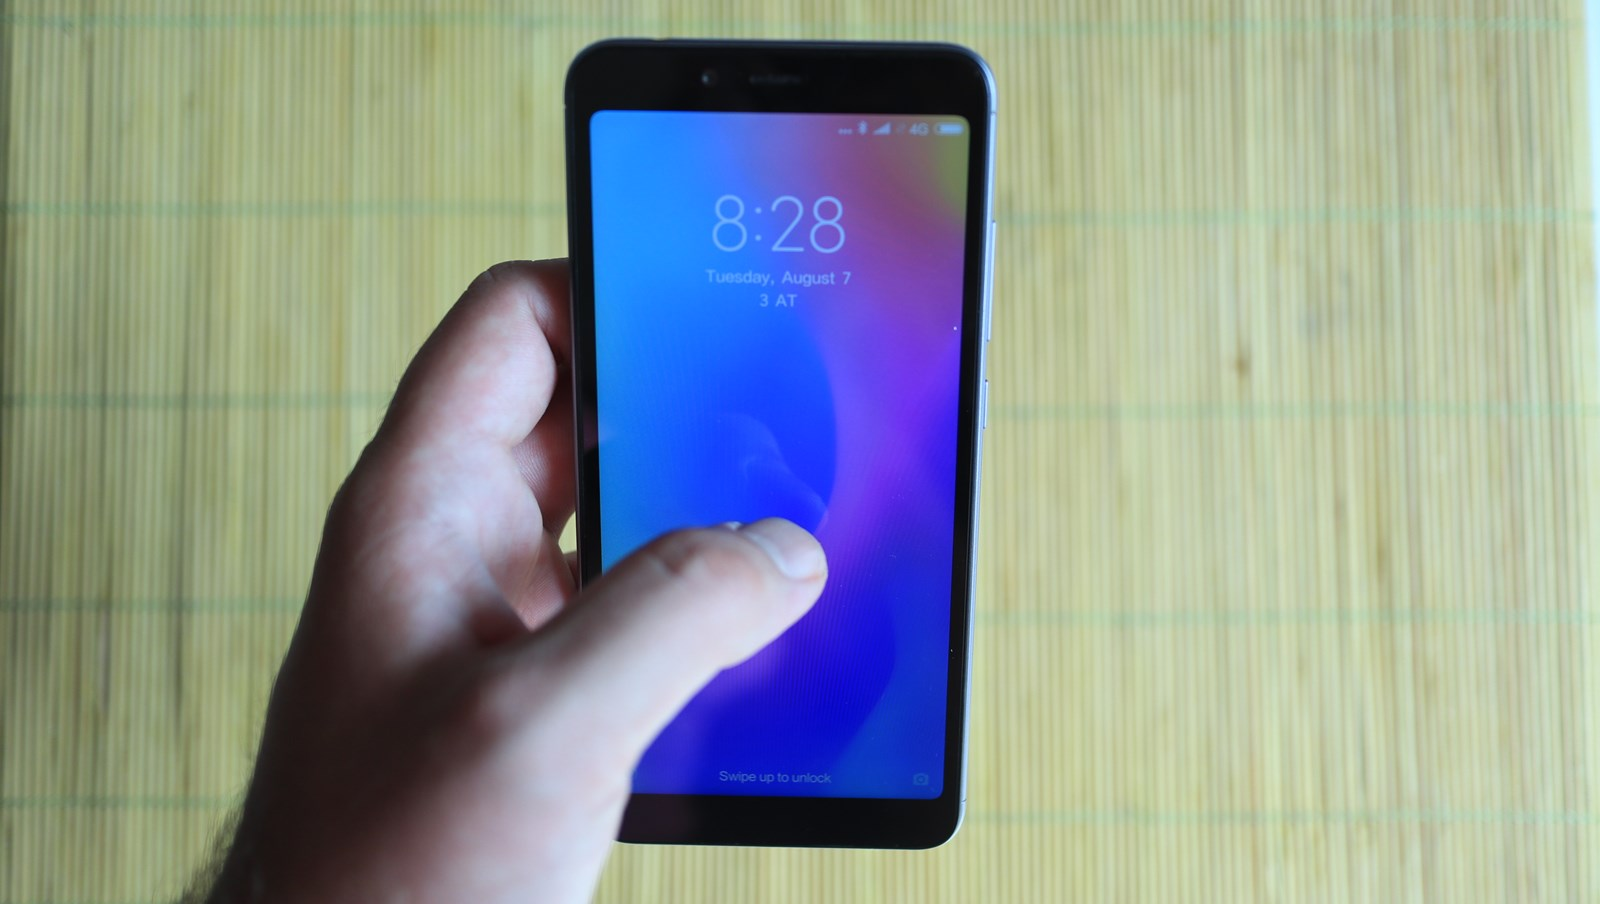 redmi, smartphone, internal memory, price, series, Xiaomi Redmi 6